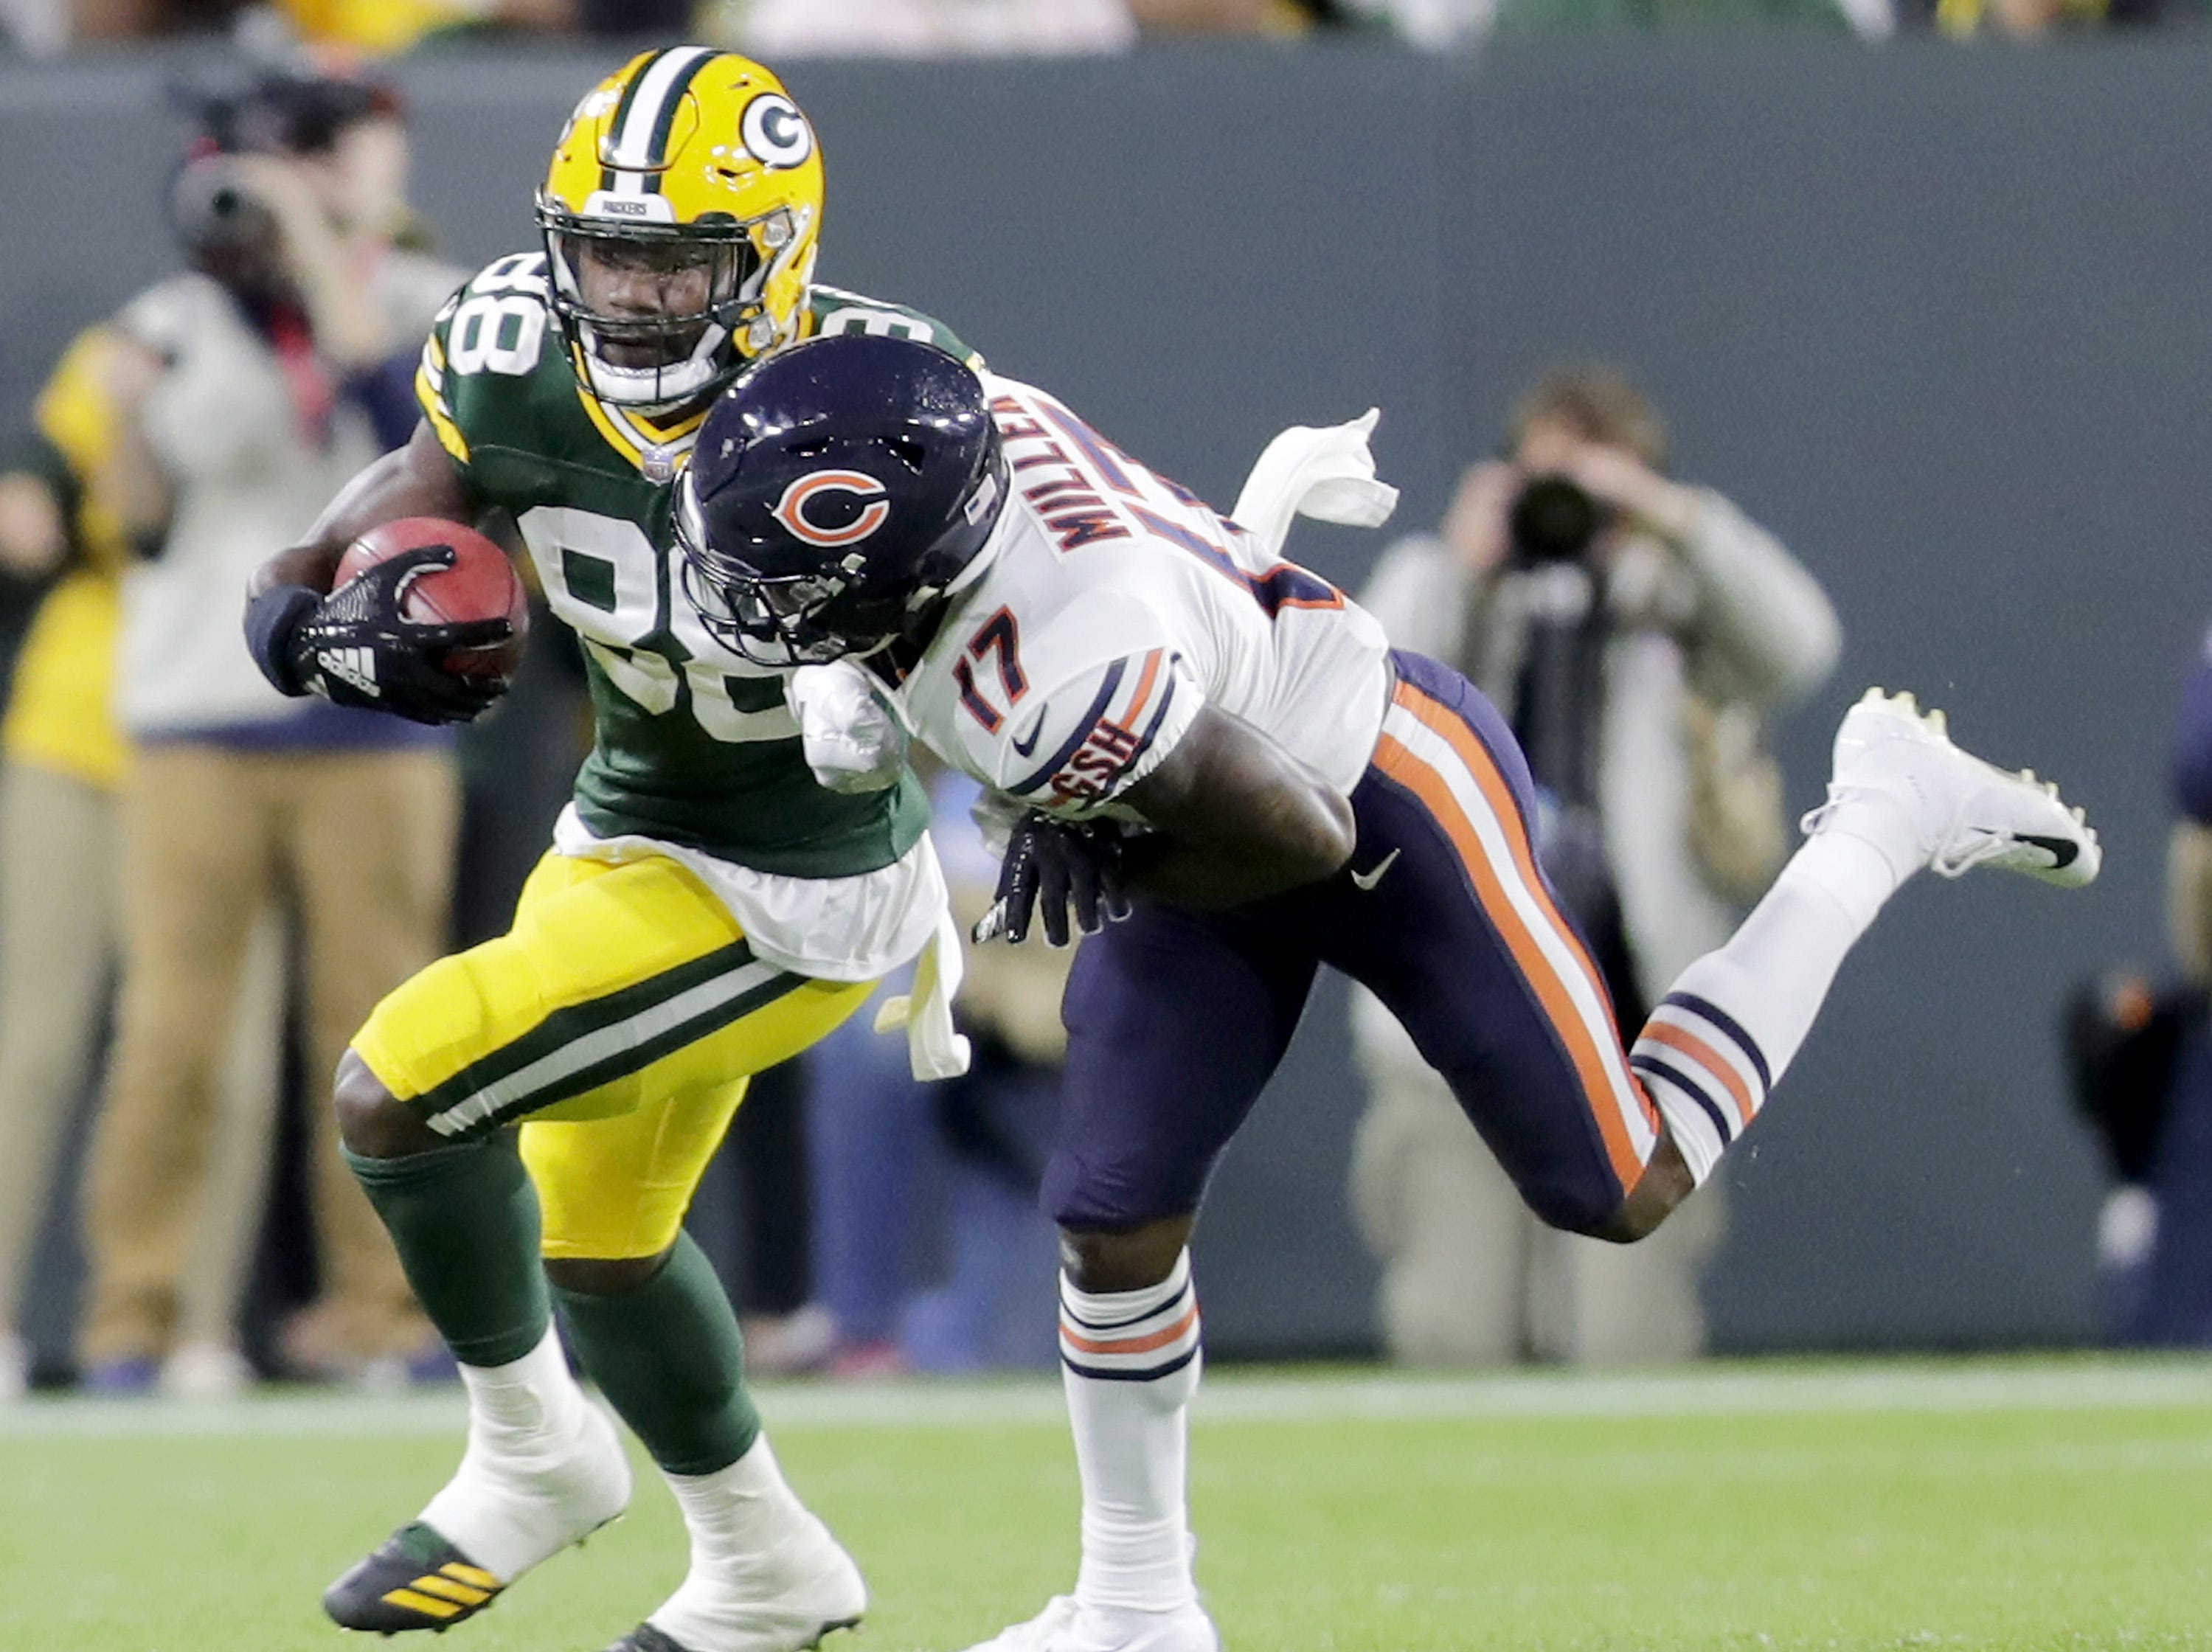 Green Bay Packers' Ty Montgomeryagainst Chicago Bears' Anthony Miller in the season opener on Sunday, September 9, 2018, at Lambeau Field in Green Bay, Wis.